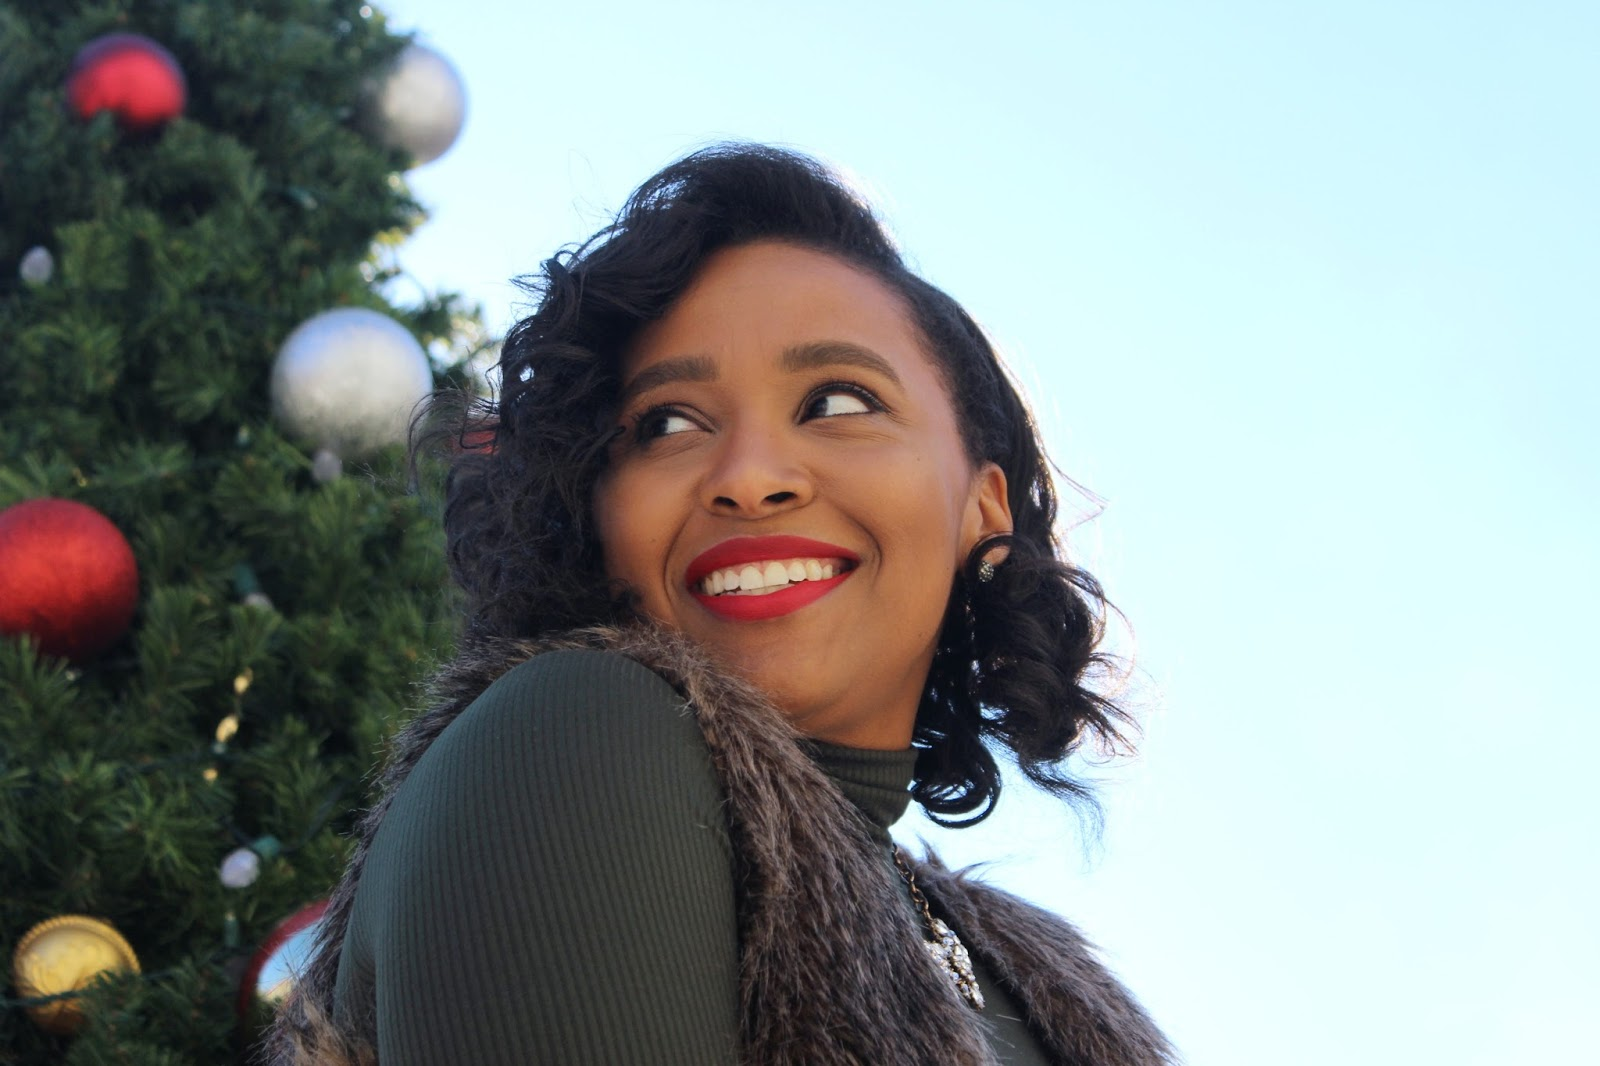 christmas outfit, holiday look, polished holiday look, faux fur, what to wear for christmas